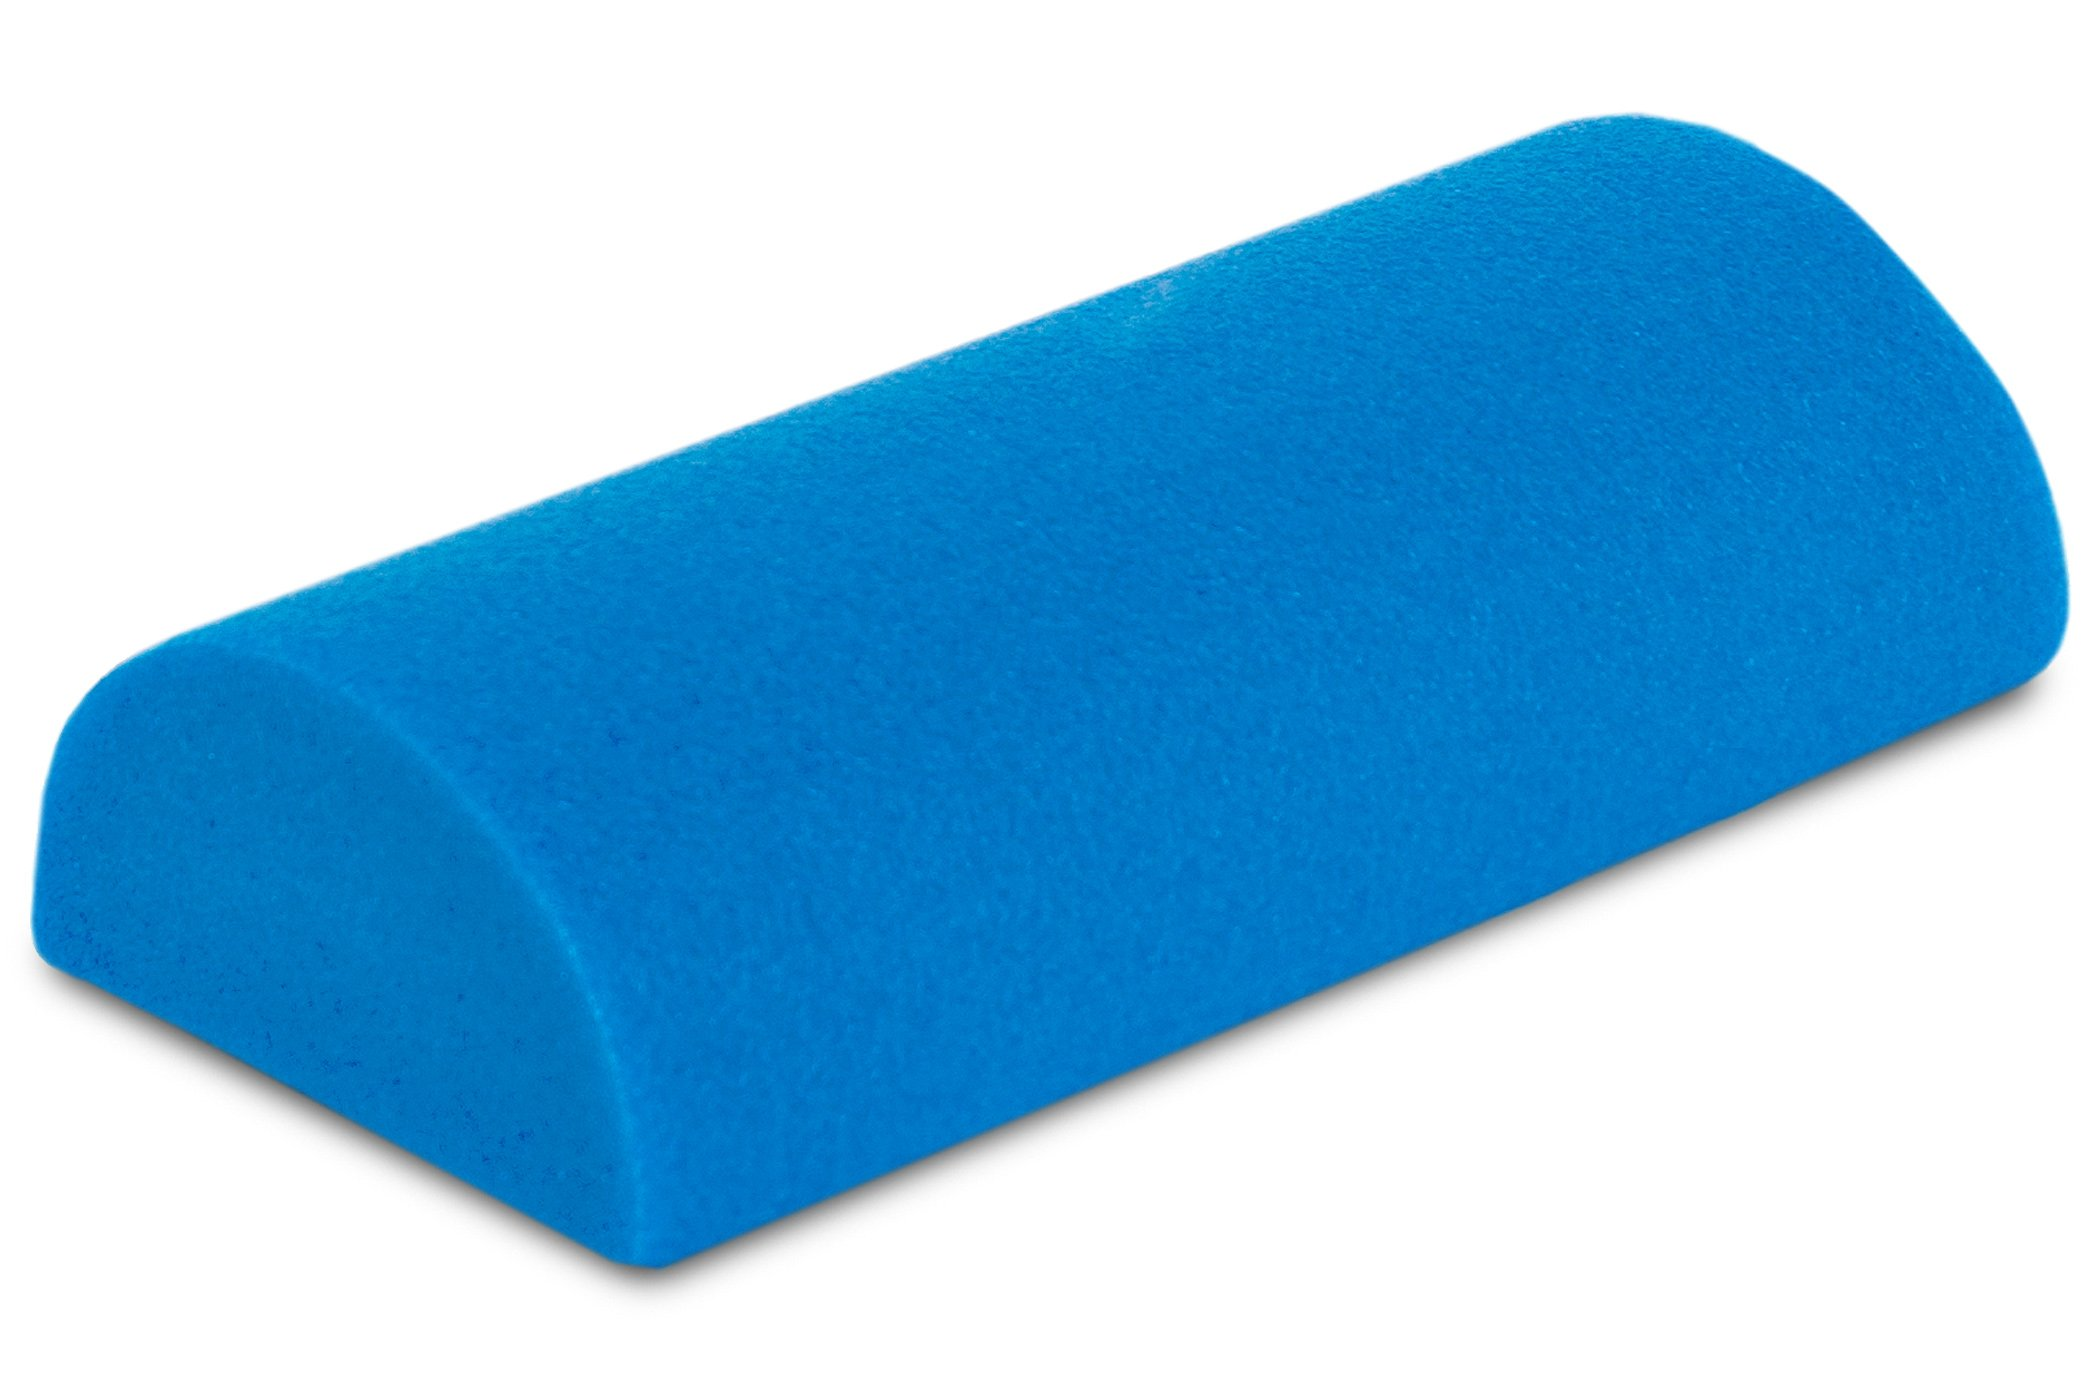 ProsourceFit Flex Foam Rollers for Muscle Massage, Physical Therapy, Core & Balance Exercises Stabilization